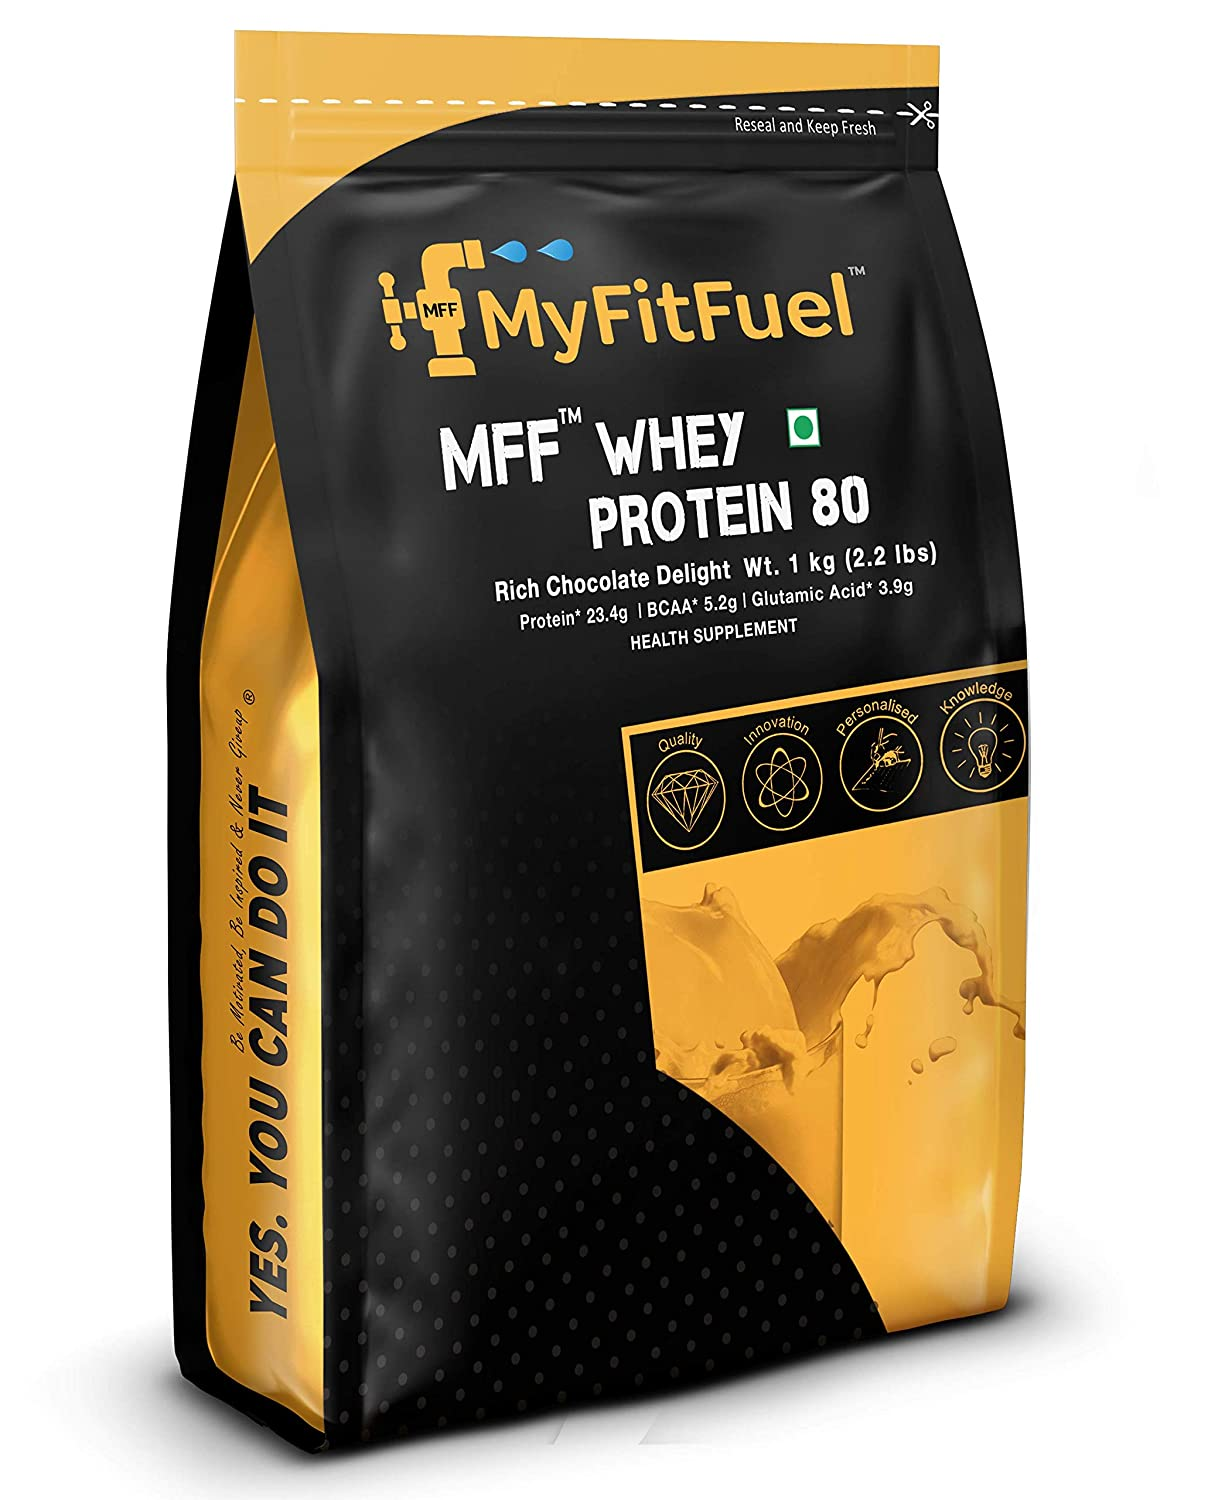 Myfitfuel Mff Whey Protein 80 - 1 Kg (2.2 Lbs) Rich Chocolate Delight